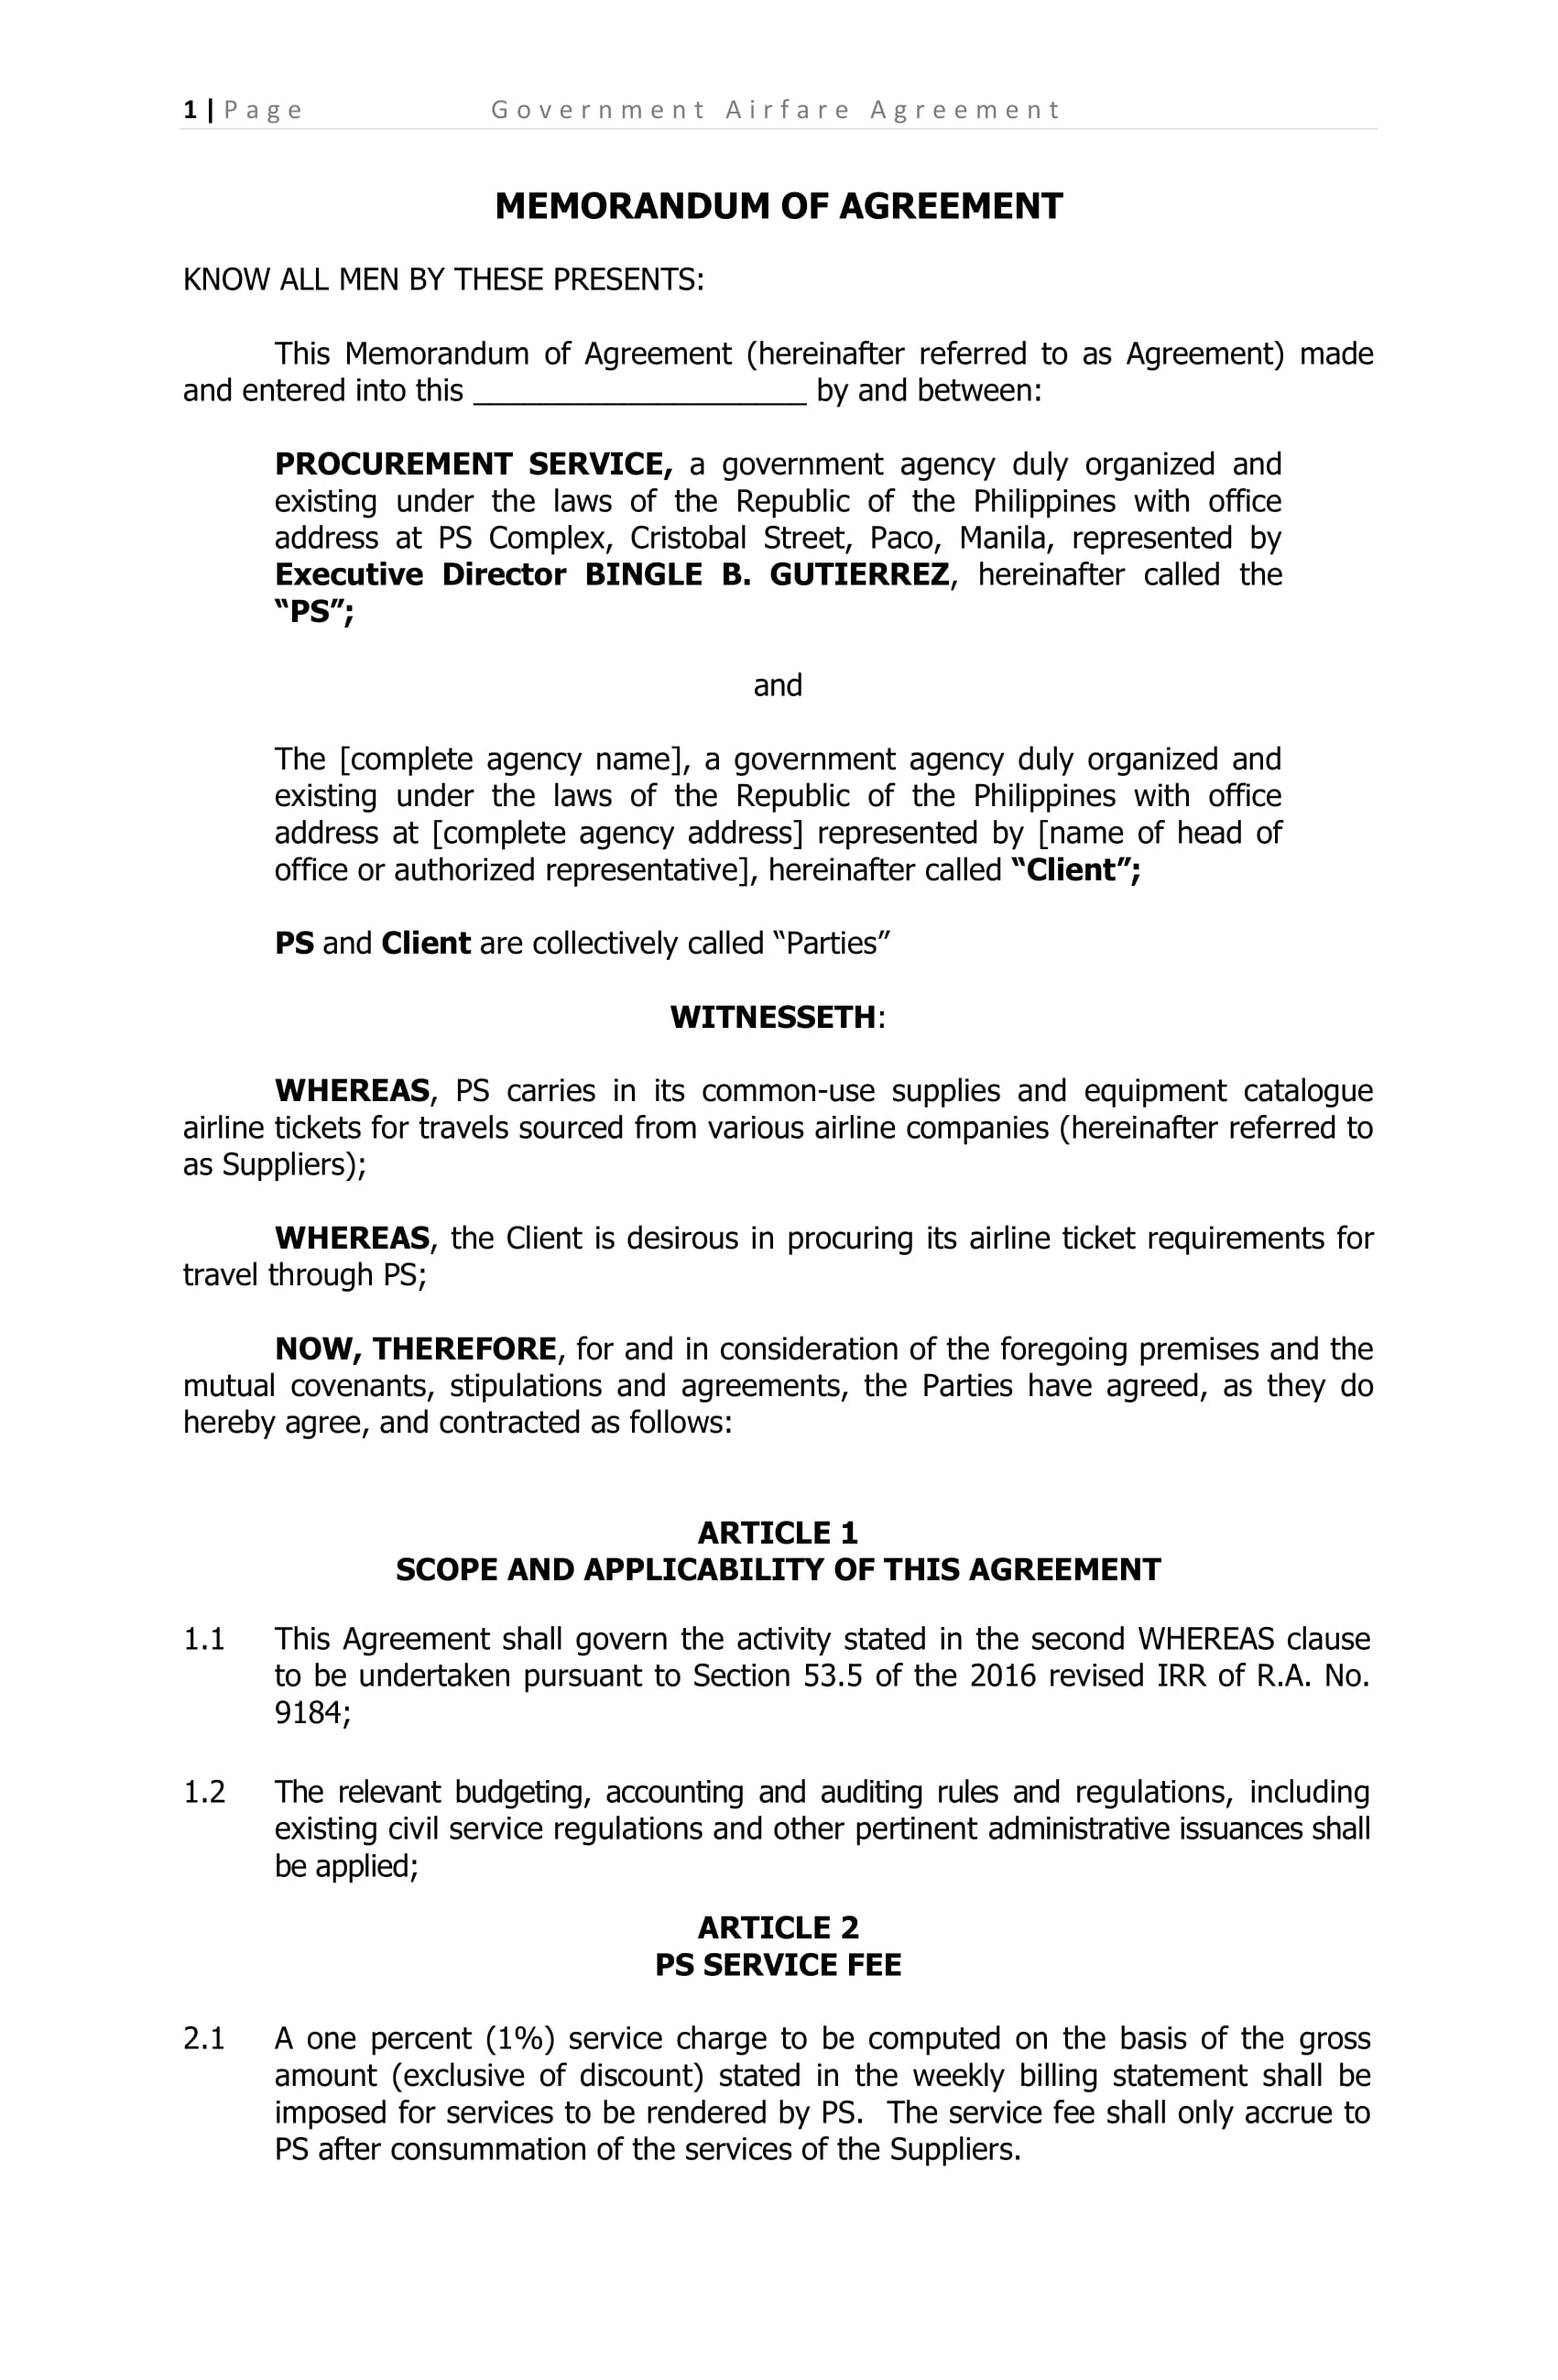 comprehensive memorandum of agreement example